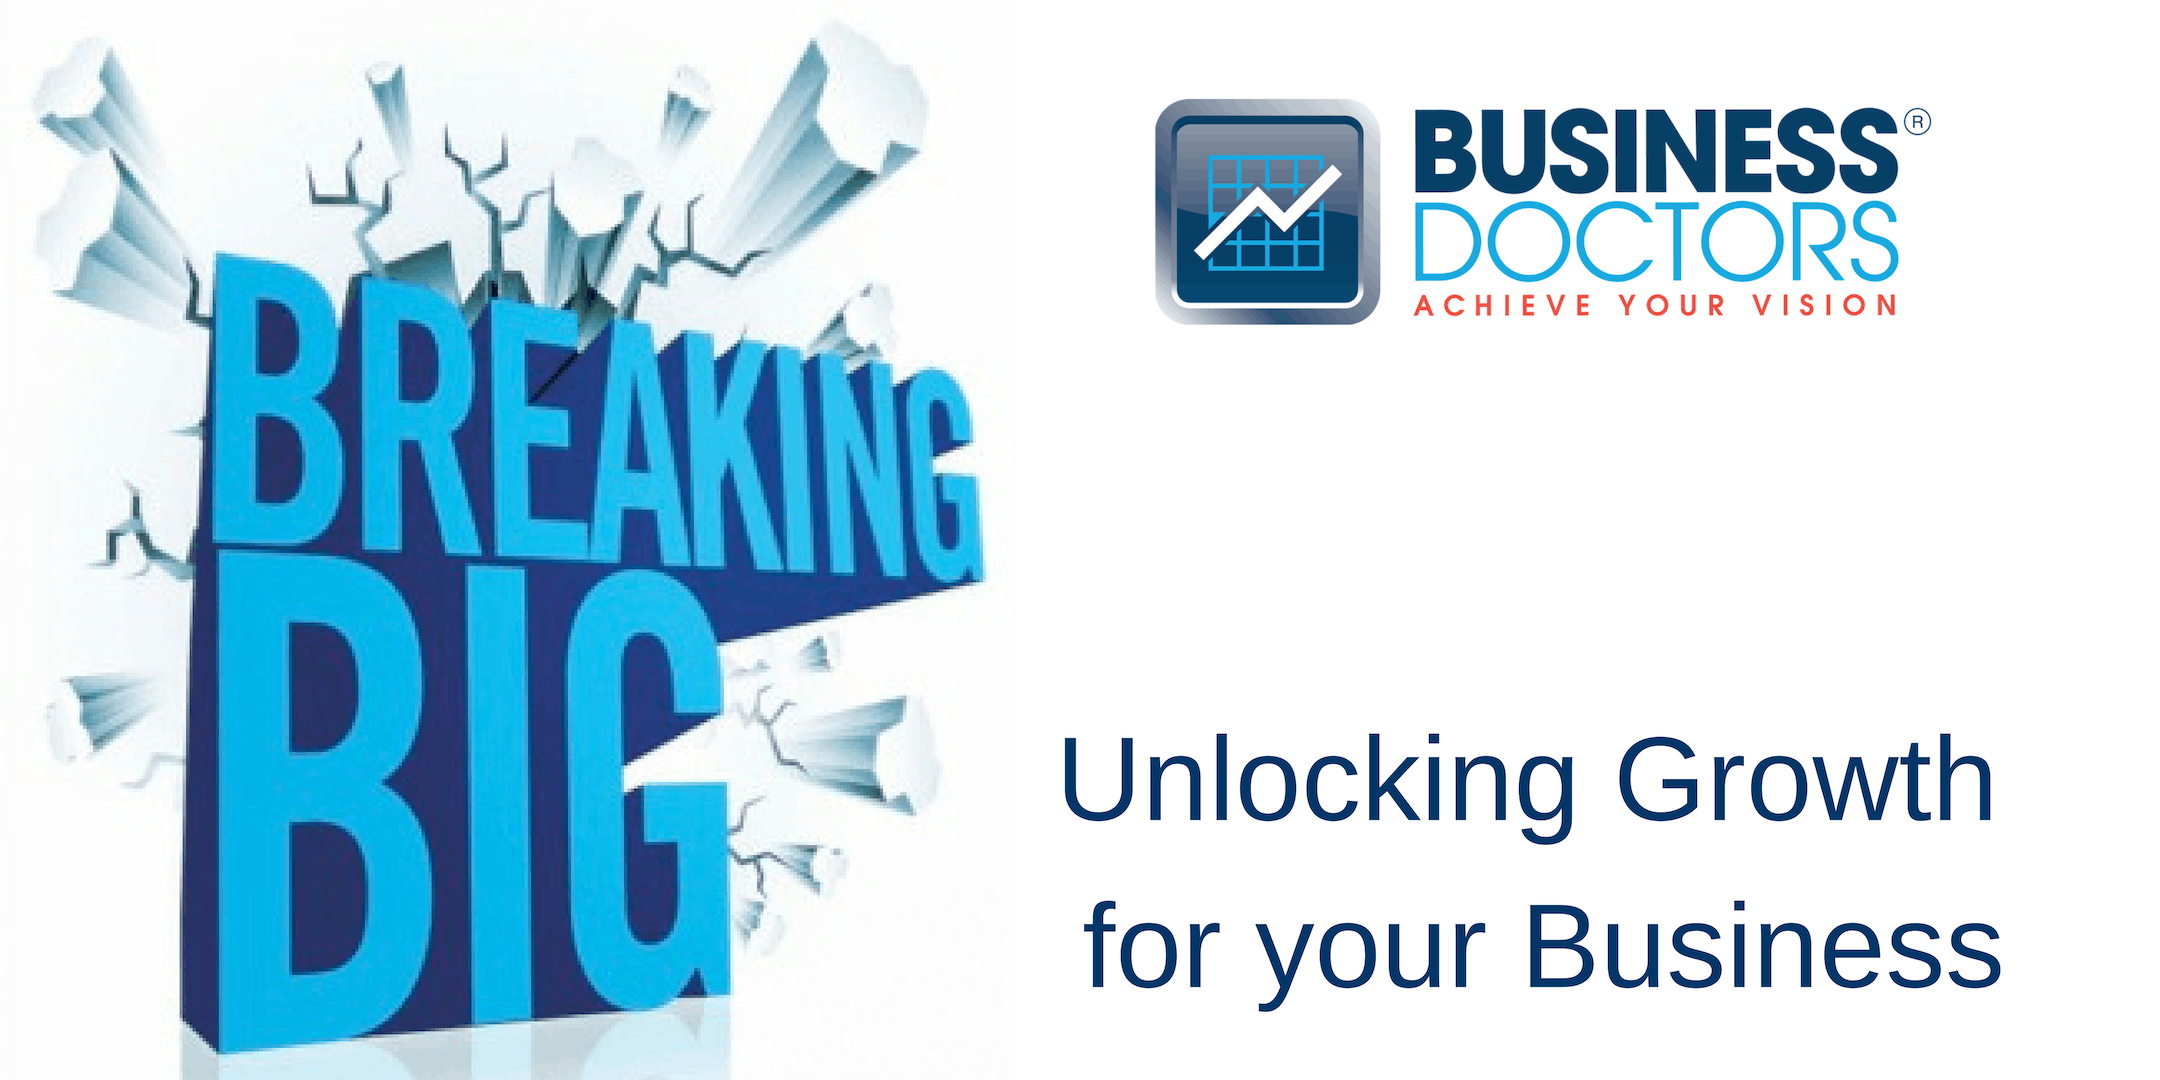 'Breaking BIG' - Unlocking Growth For Your Business